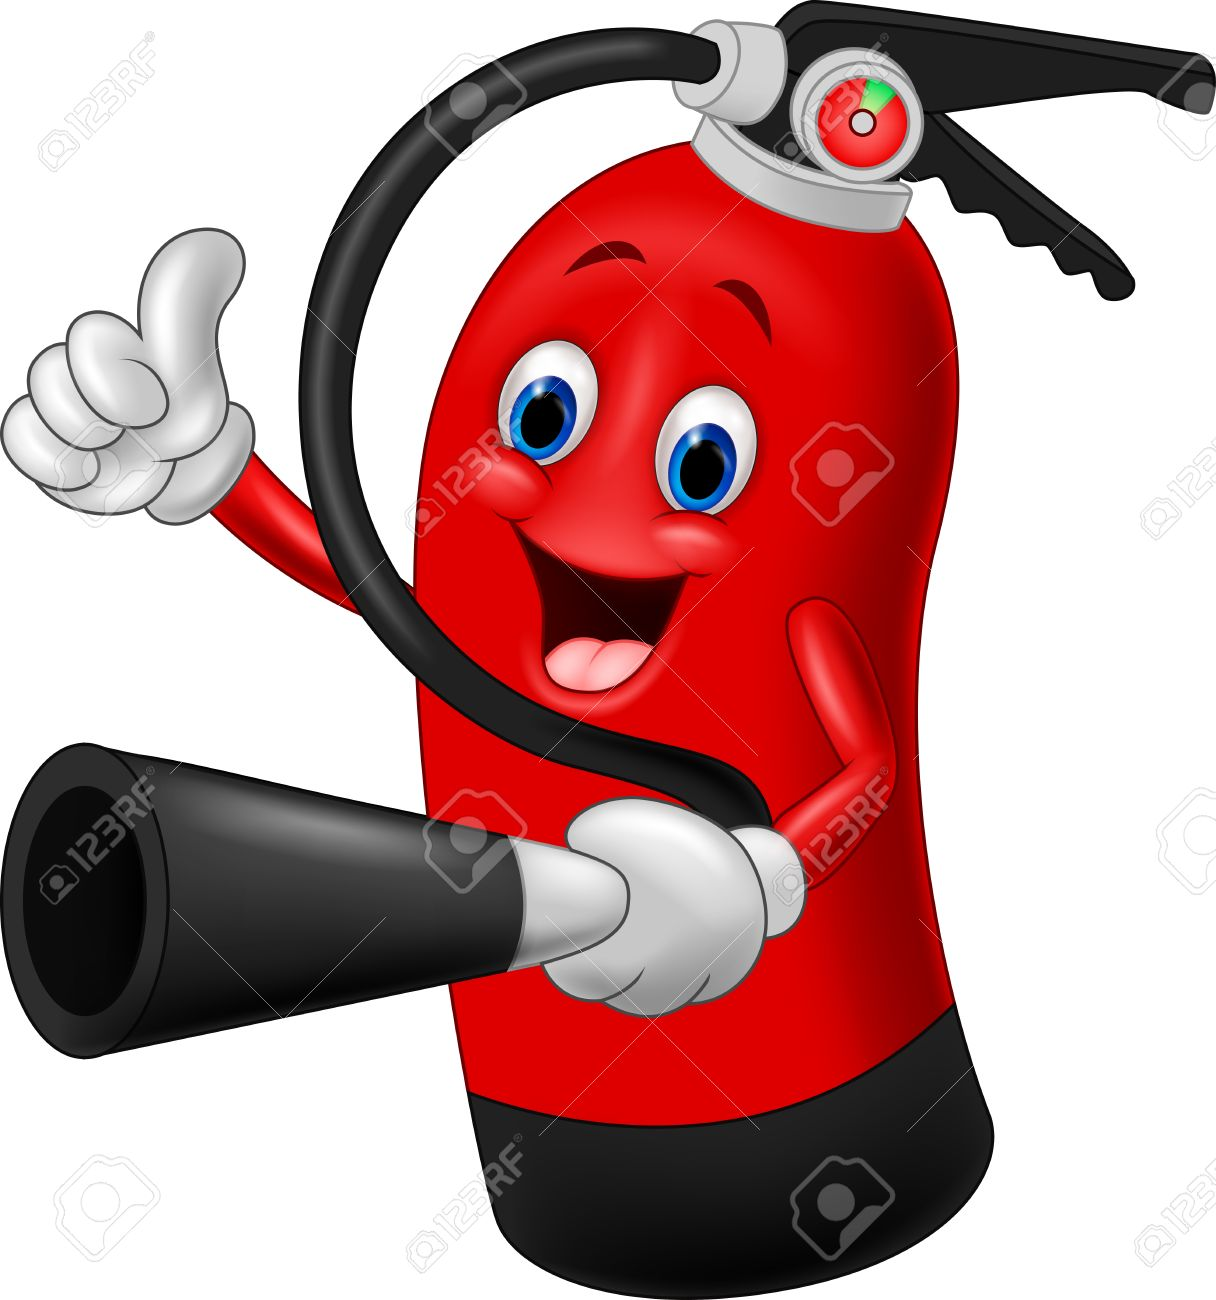 cartoon character of fire extinguisher giving thumb up royalty free cliparts vectors and stock illustration image 45092915 cartoon character of fire extinguisher giving thumb up